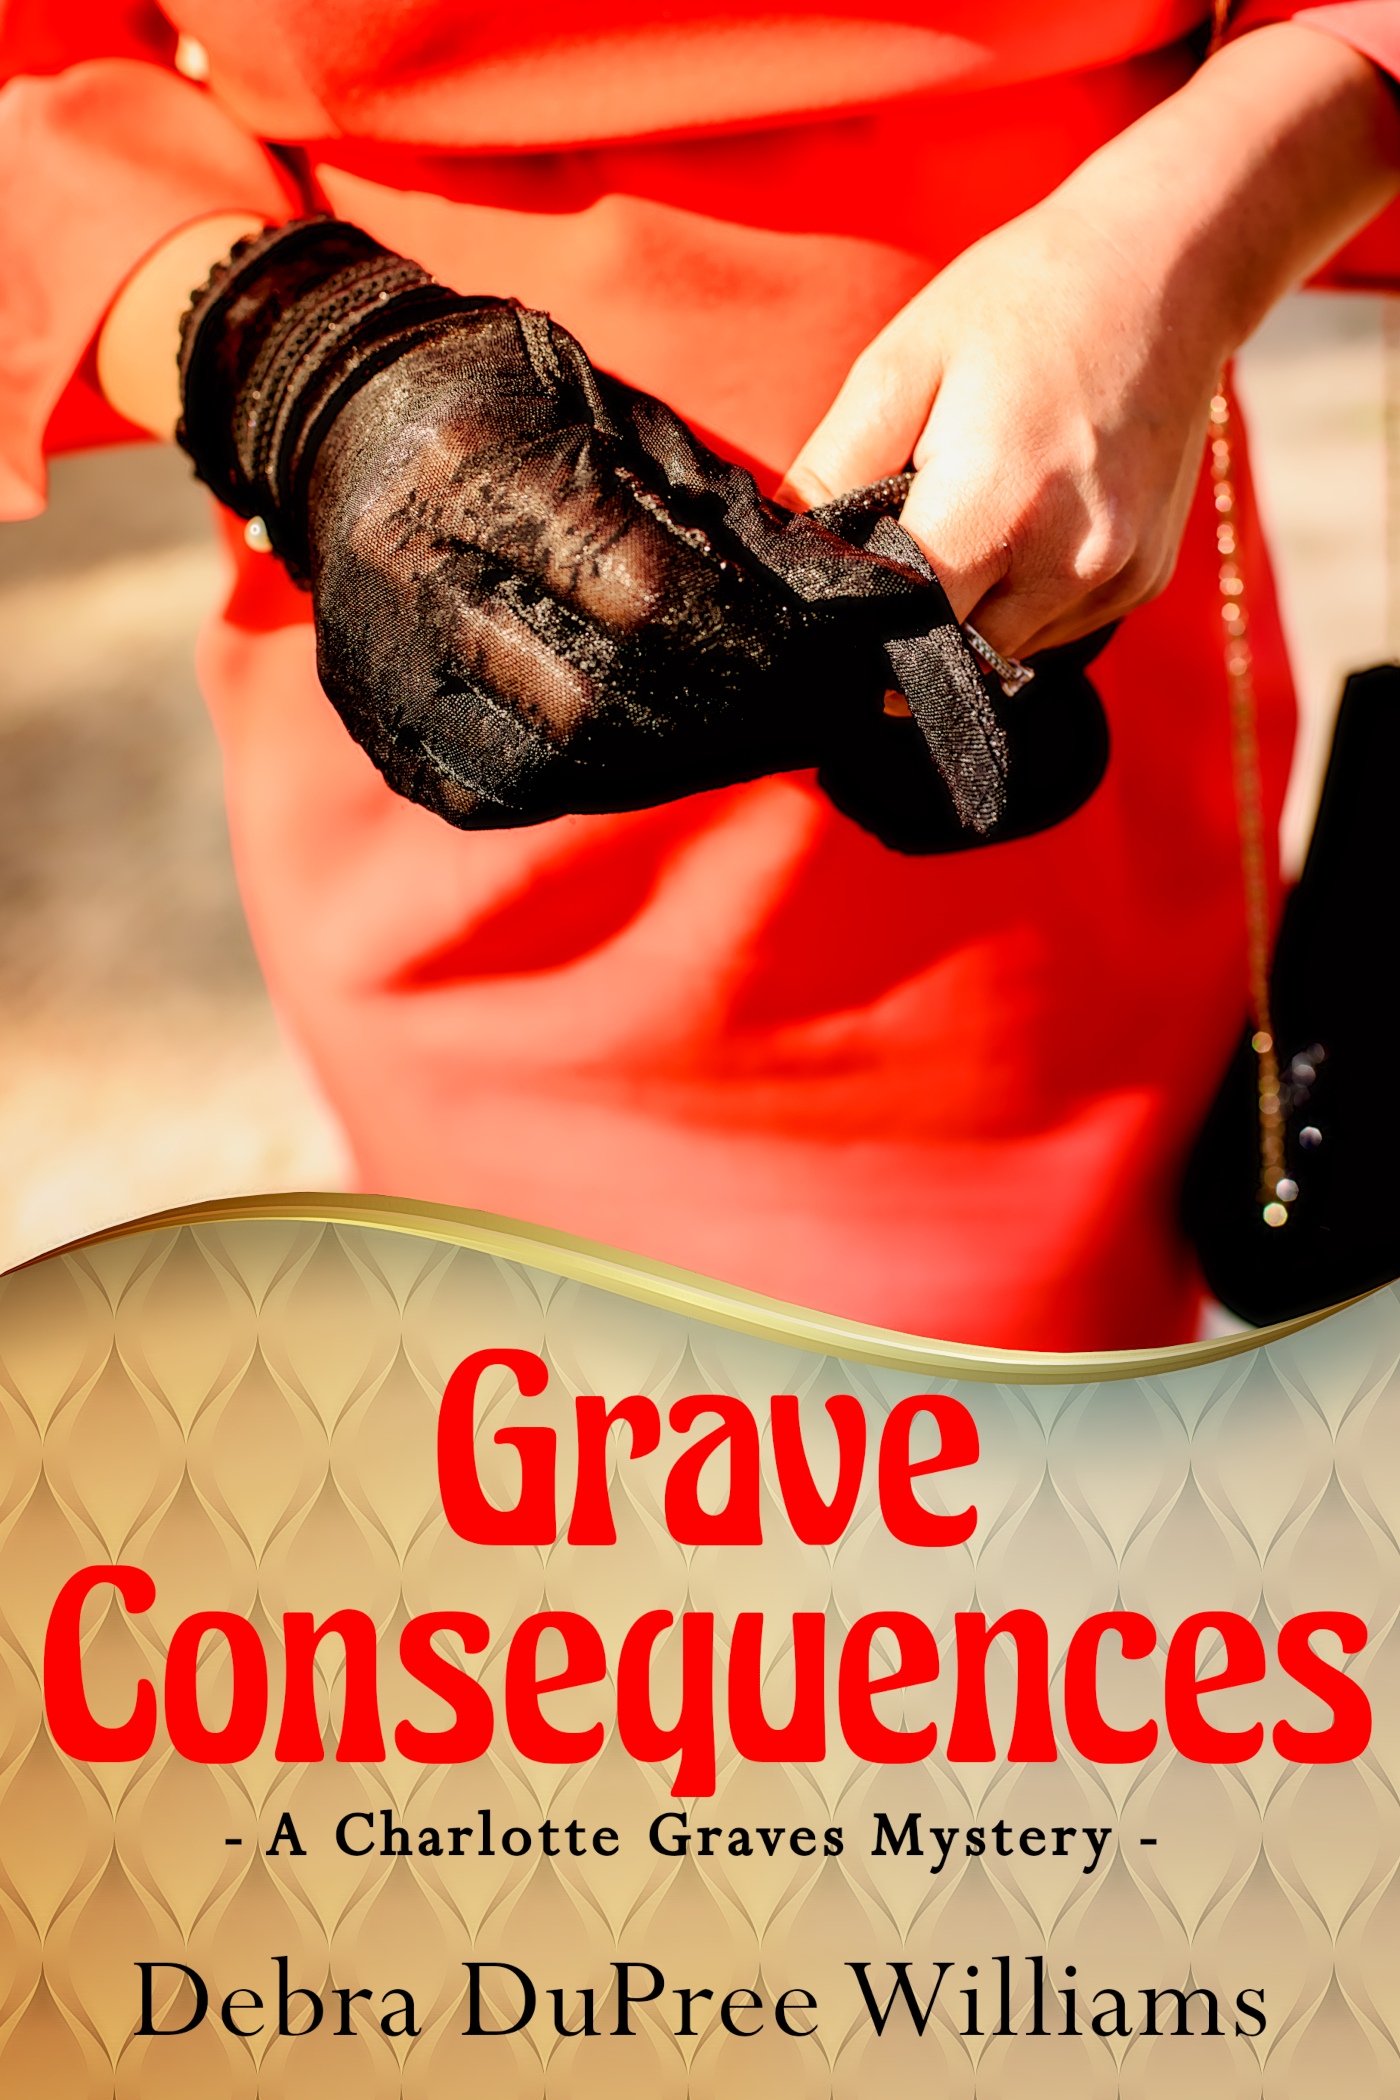 Photo of book Grave Consequences